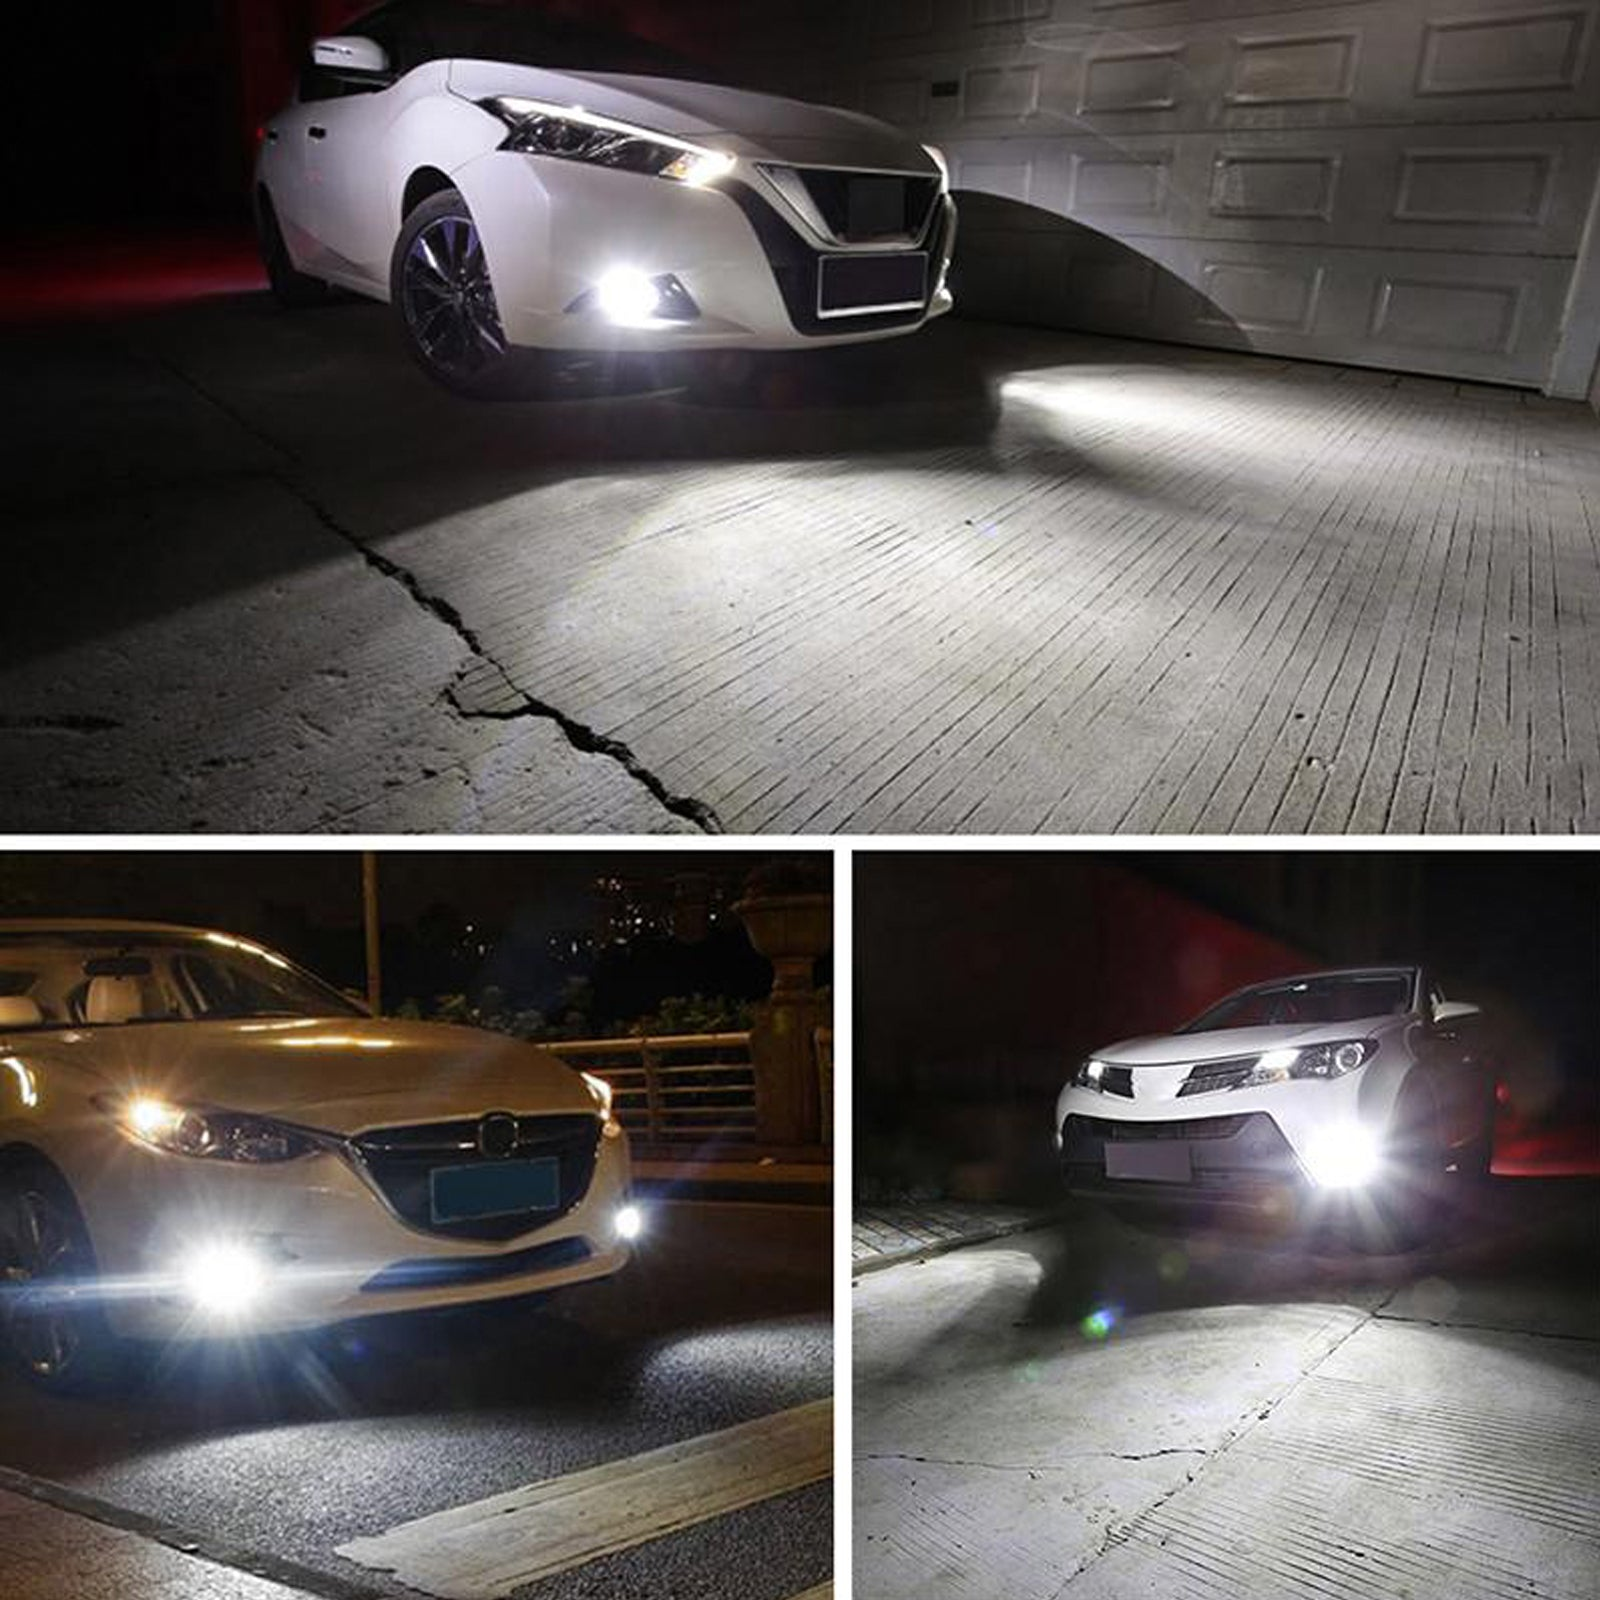 2x H7 LED Headlight Kit with Retainer Adapter Clip Holder